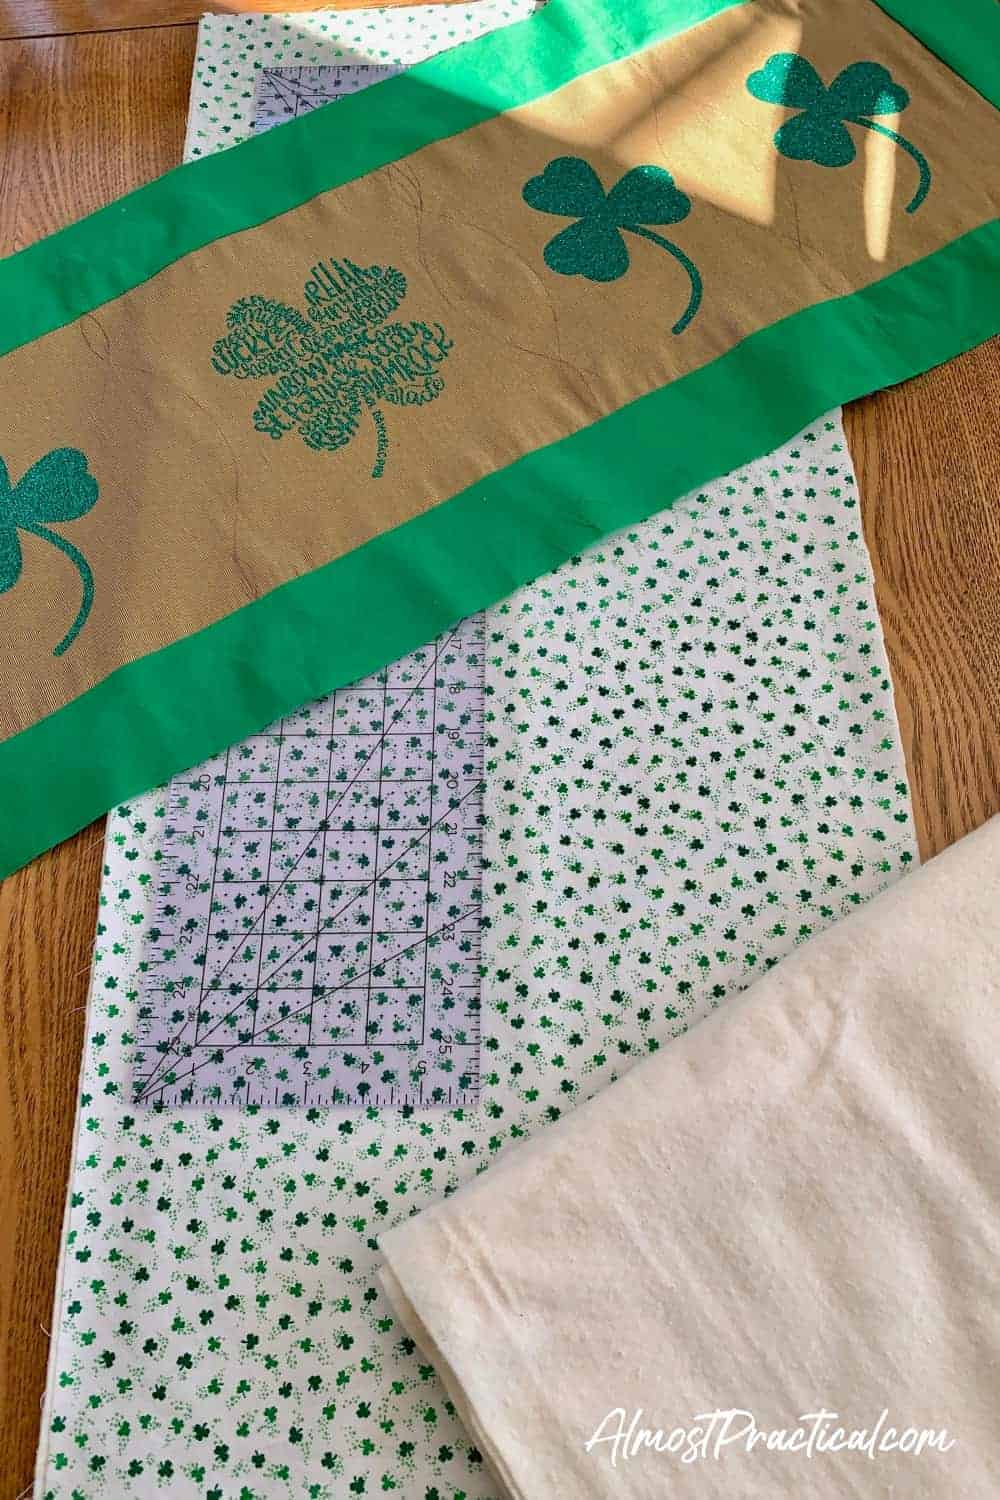 table runner for st patricks day still being created